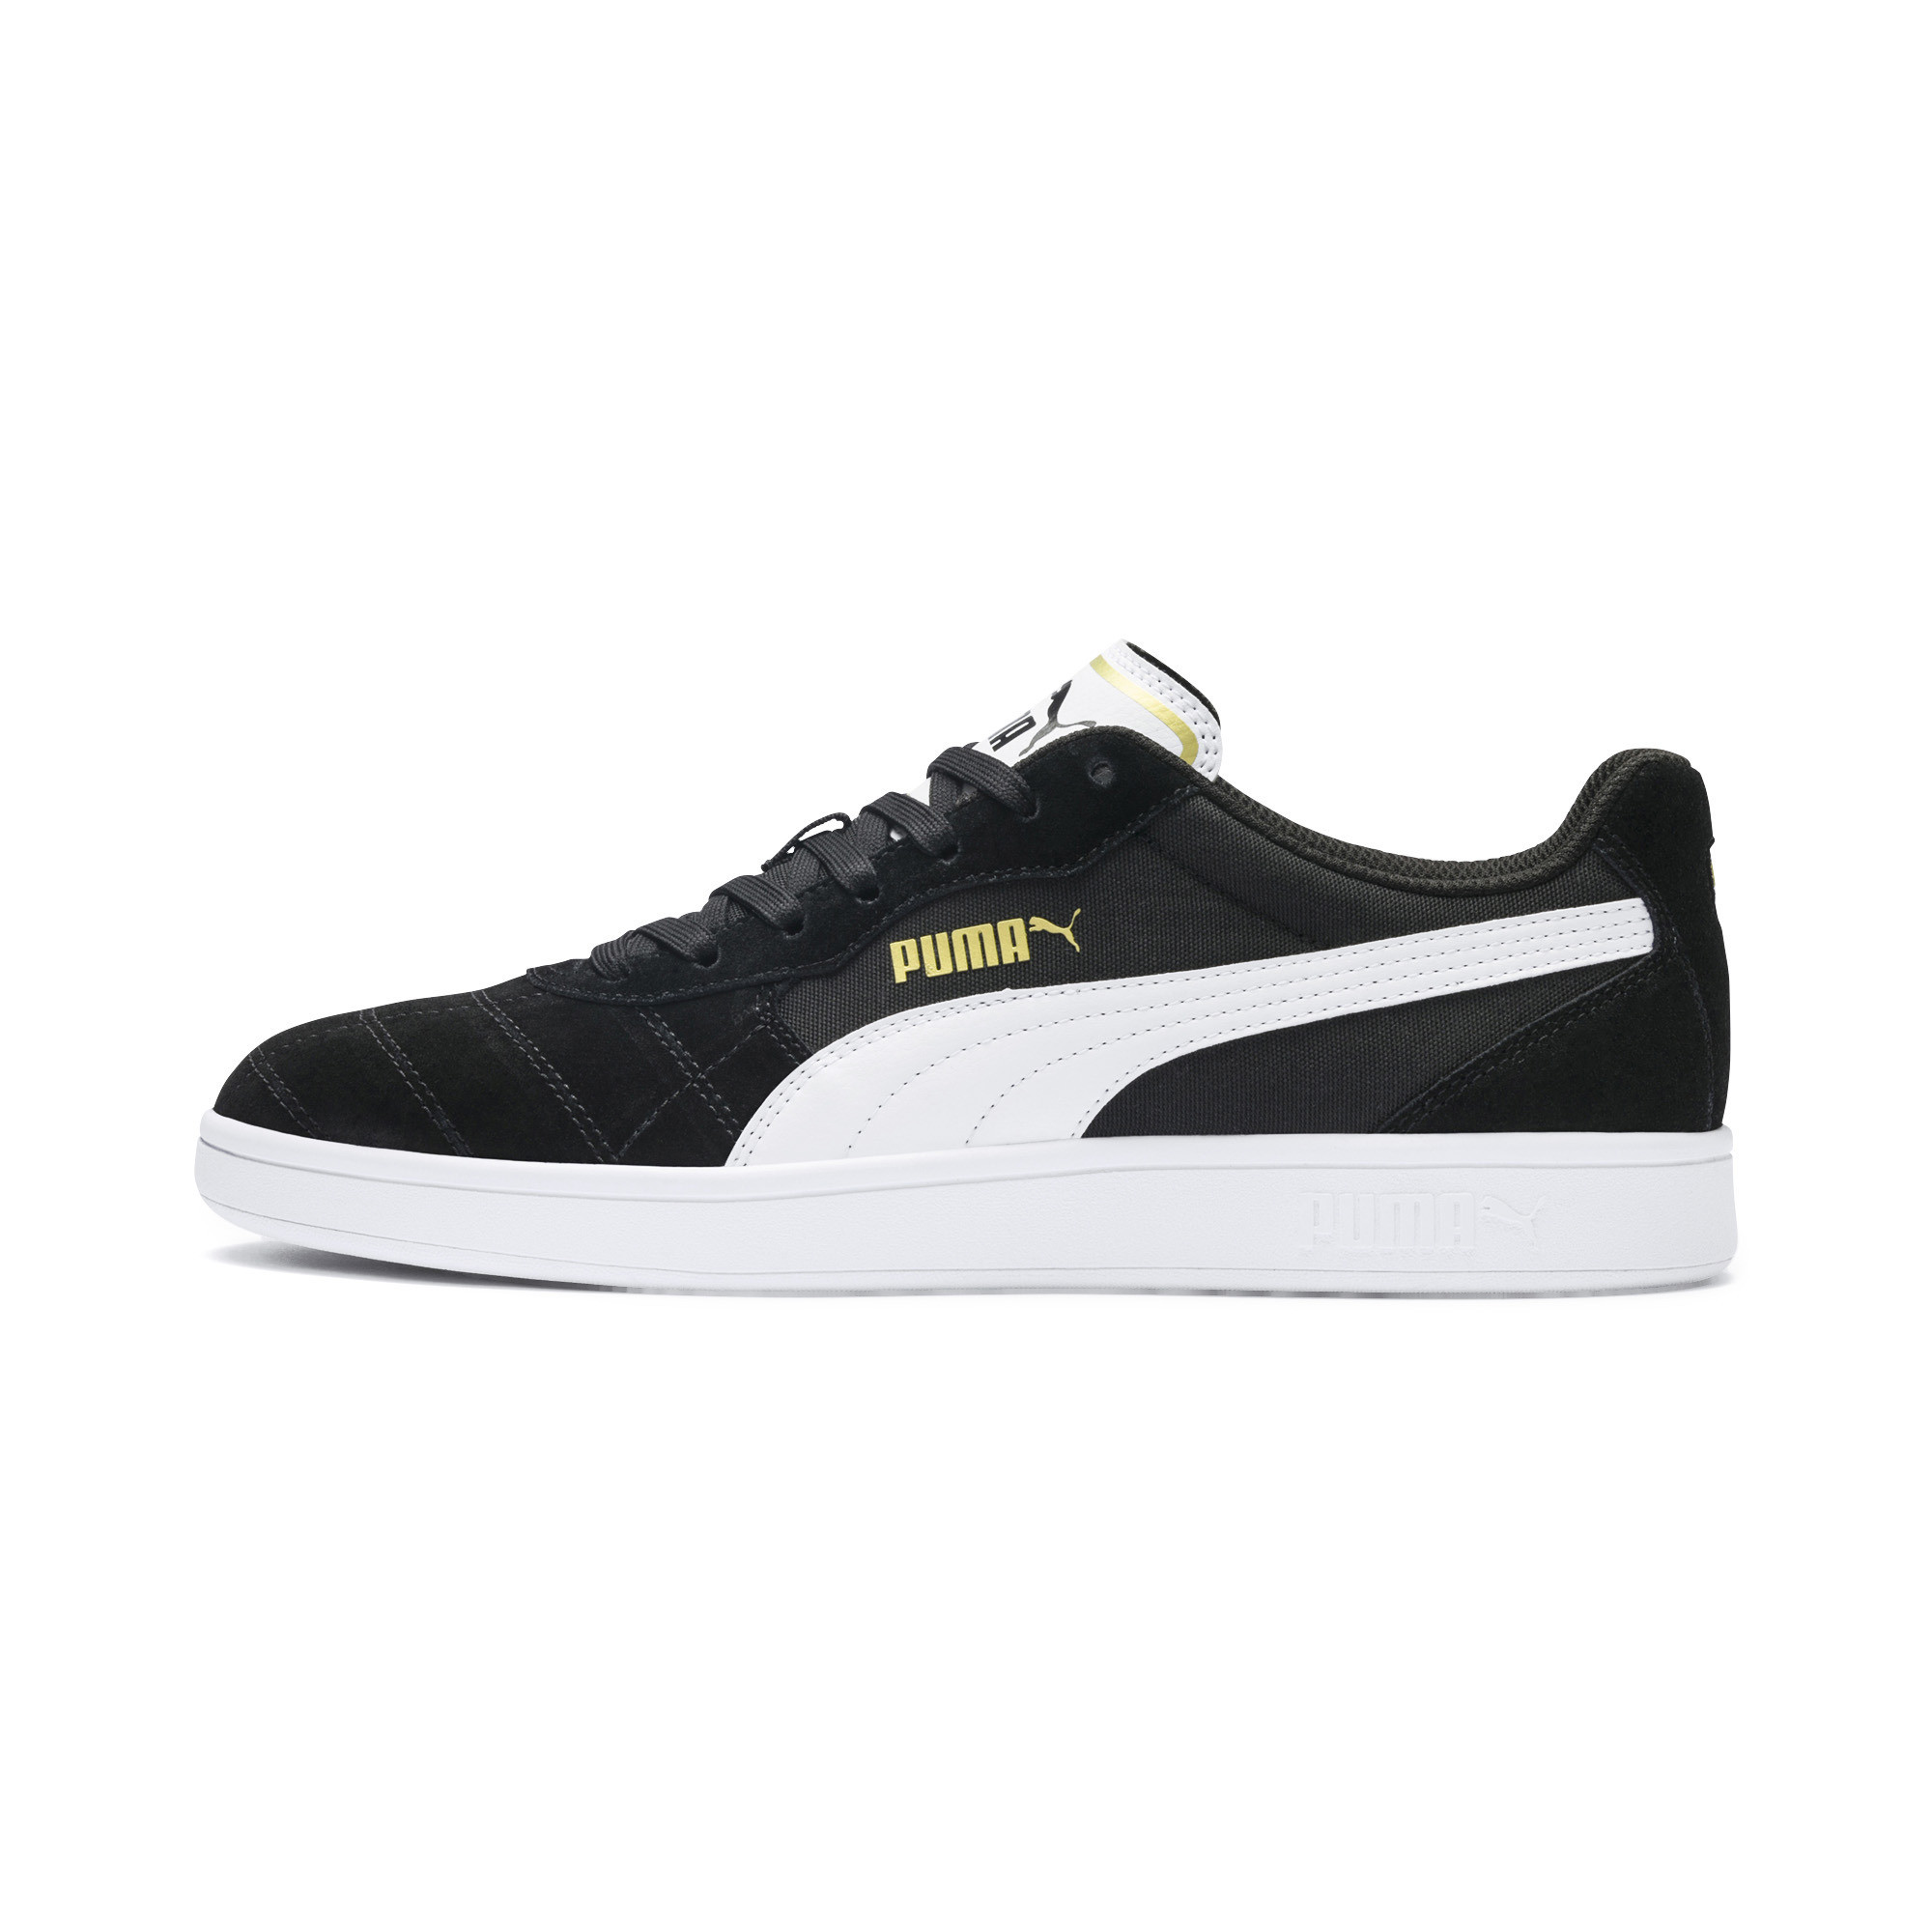 PUMA-Astro-Kick-Men-039-s-Sneakers-Men-Shoe-Basics thumbnail 22